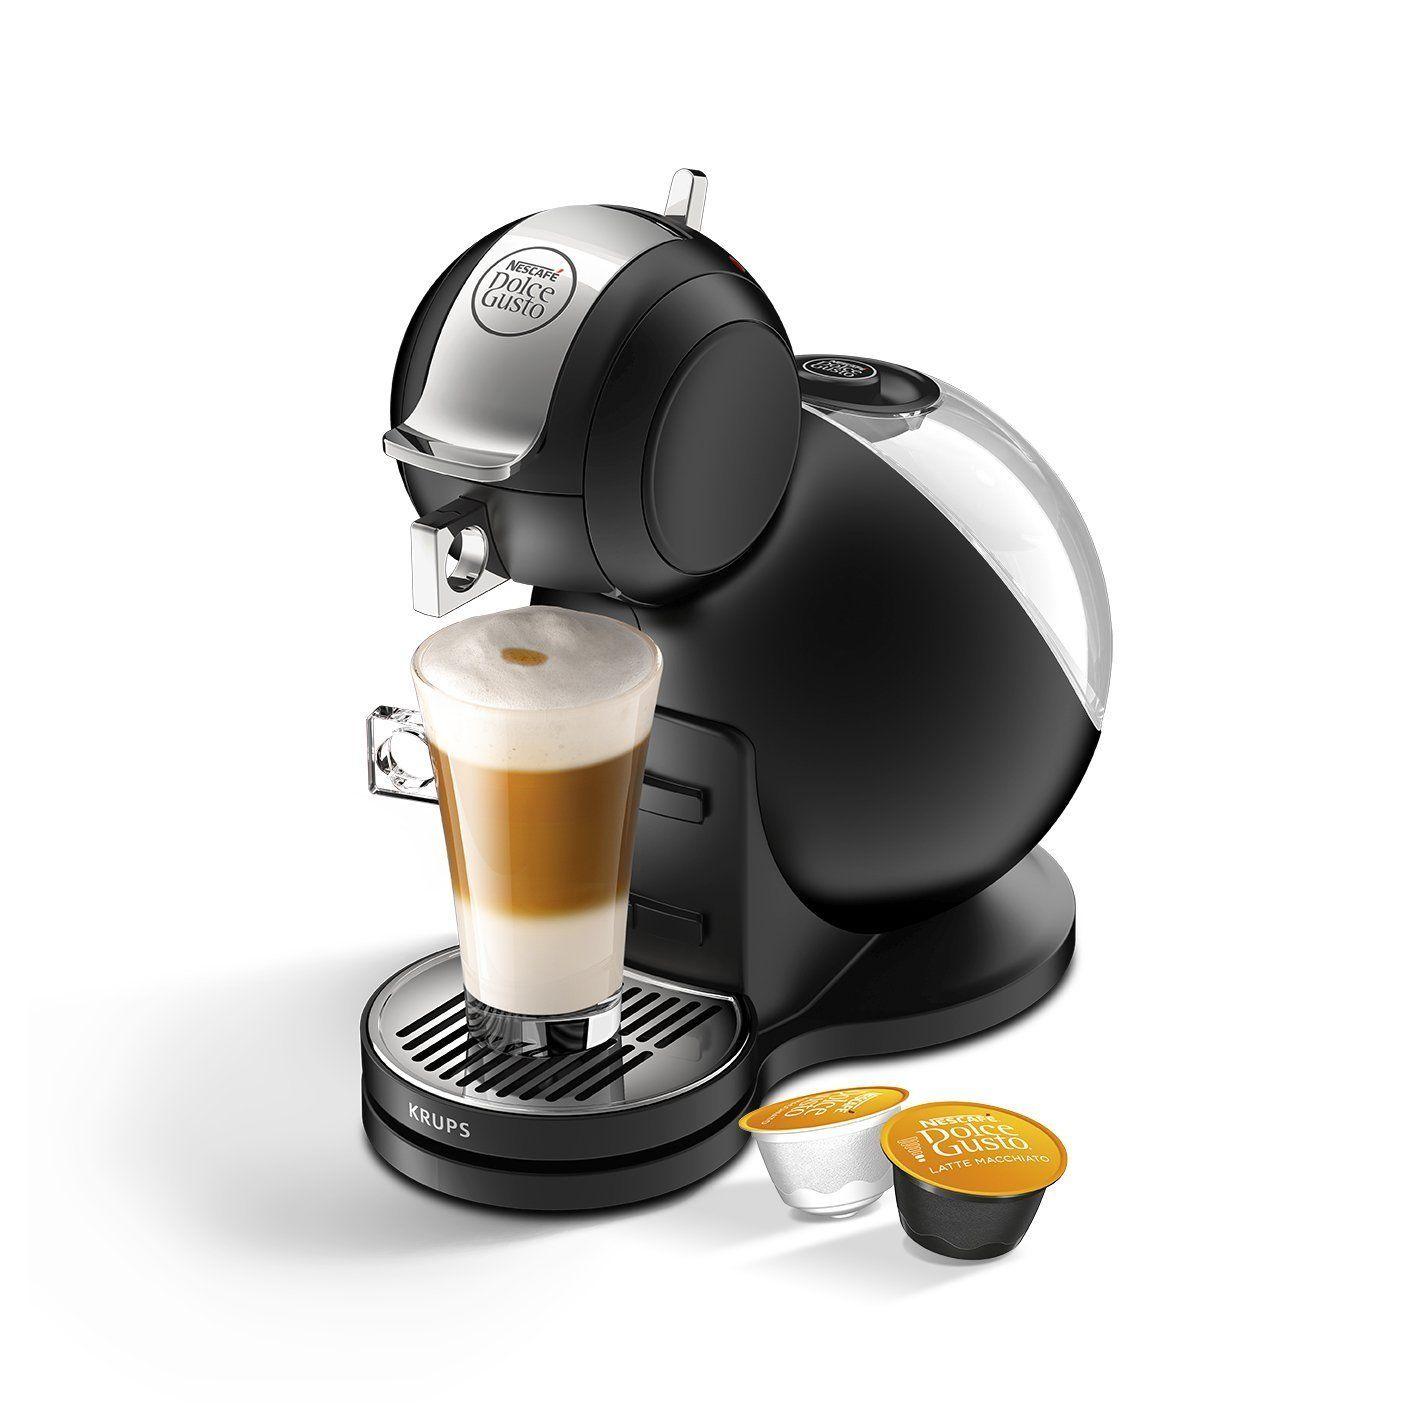 Krups Nescafe Dolce Gusto Melody 3 Manual Coffee Machine